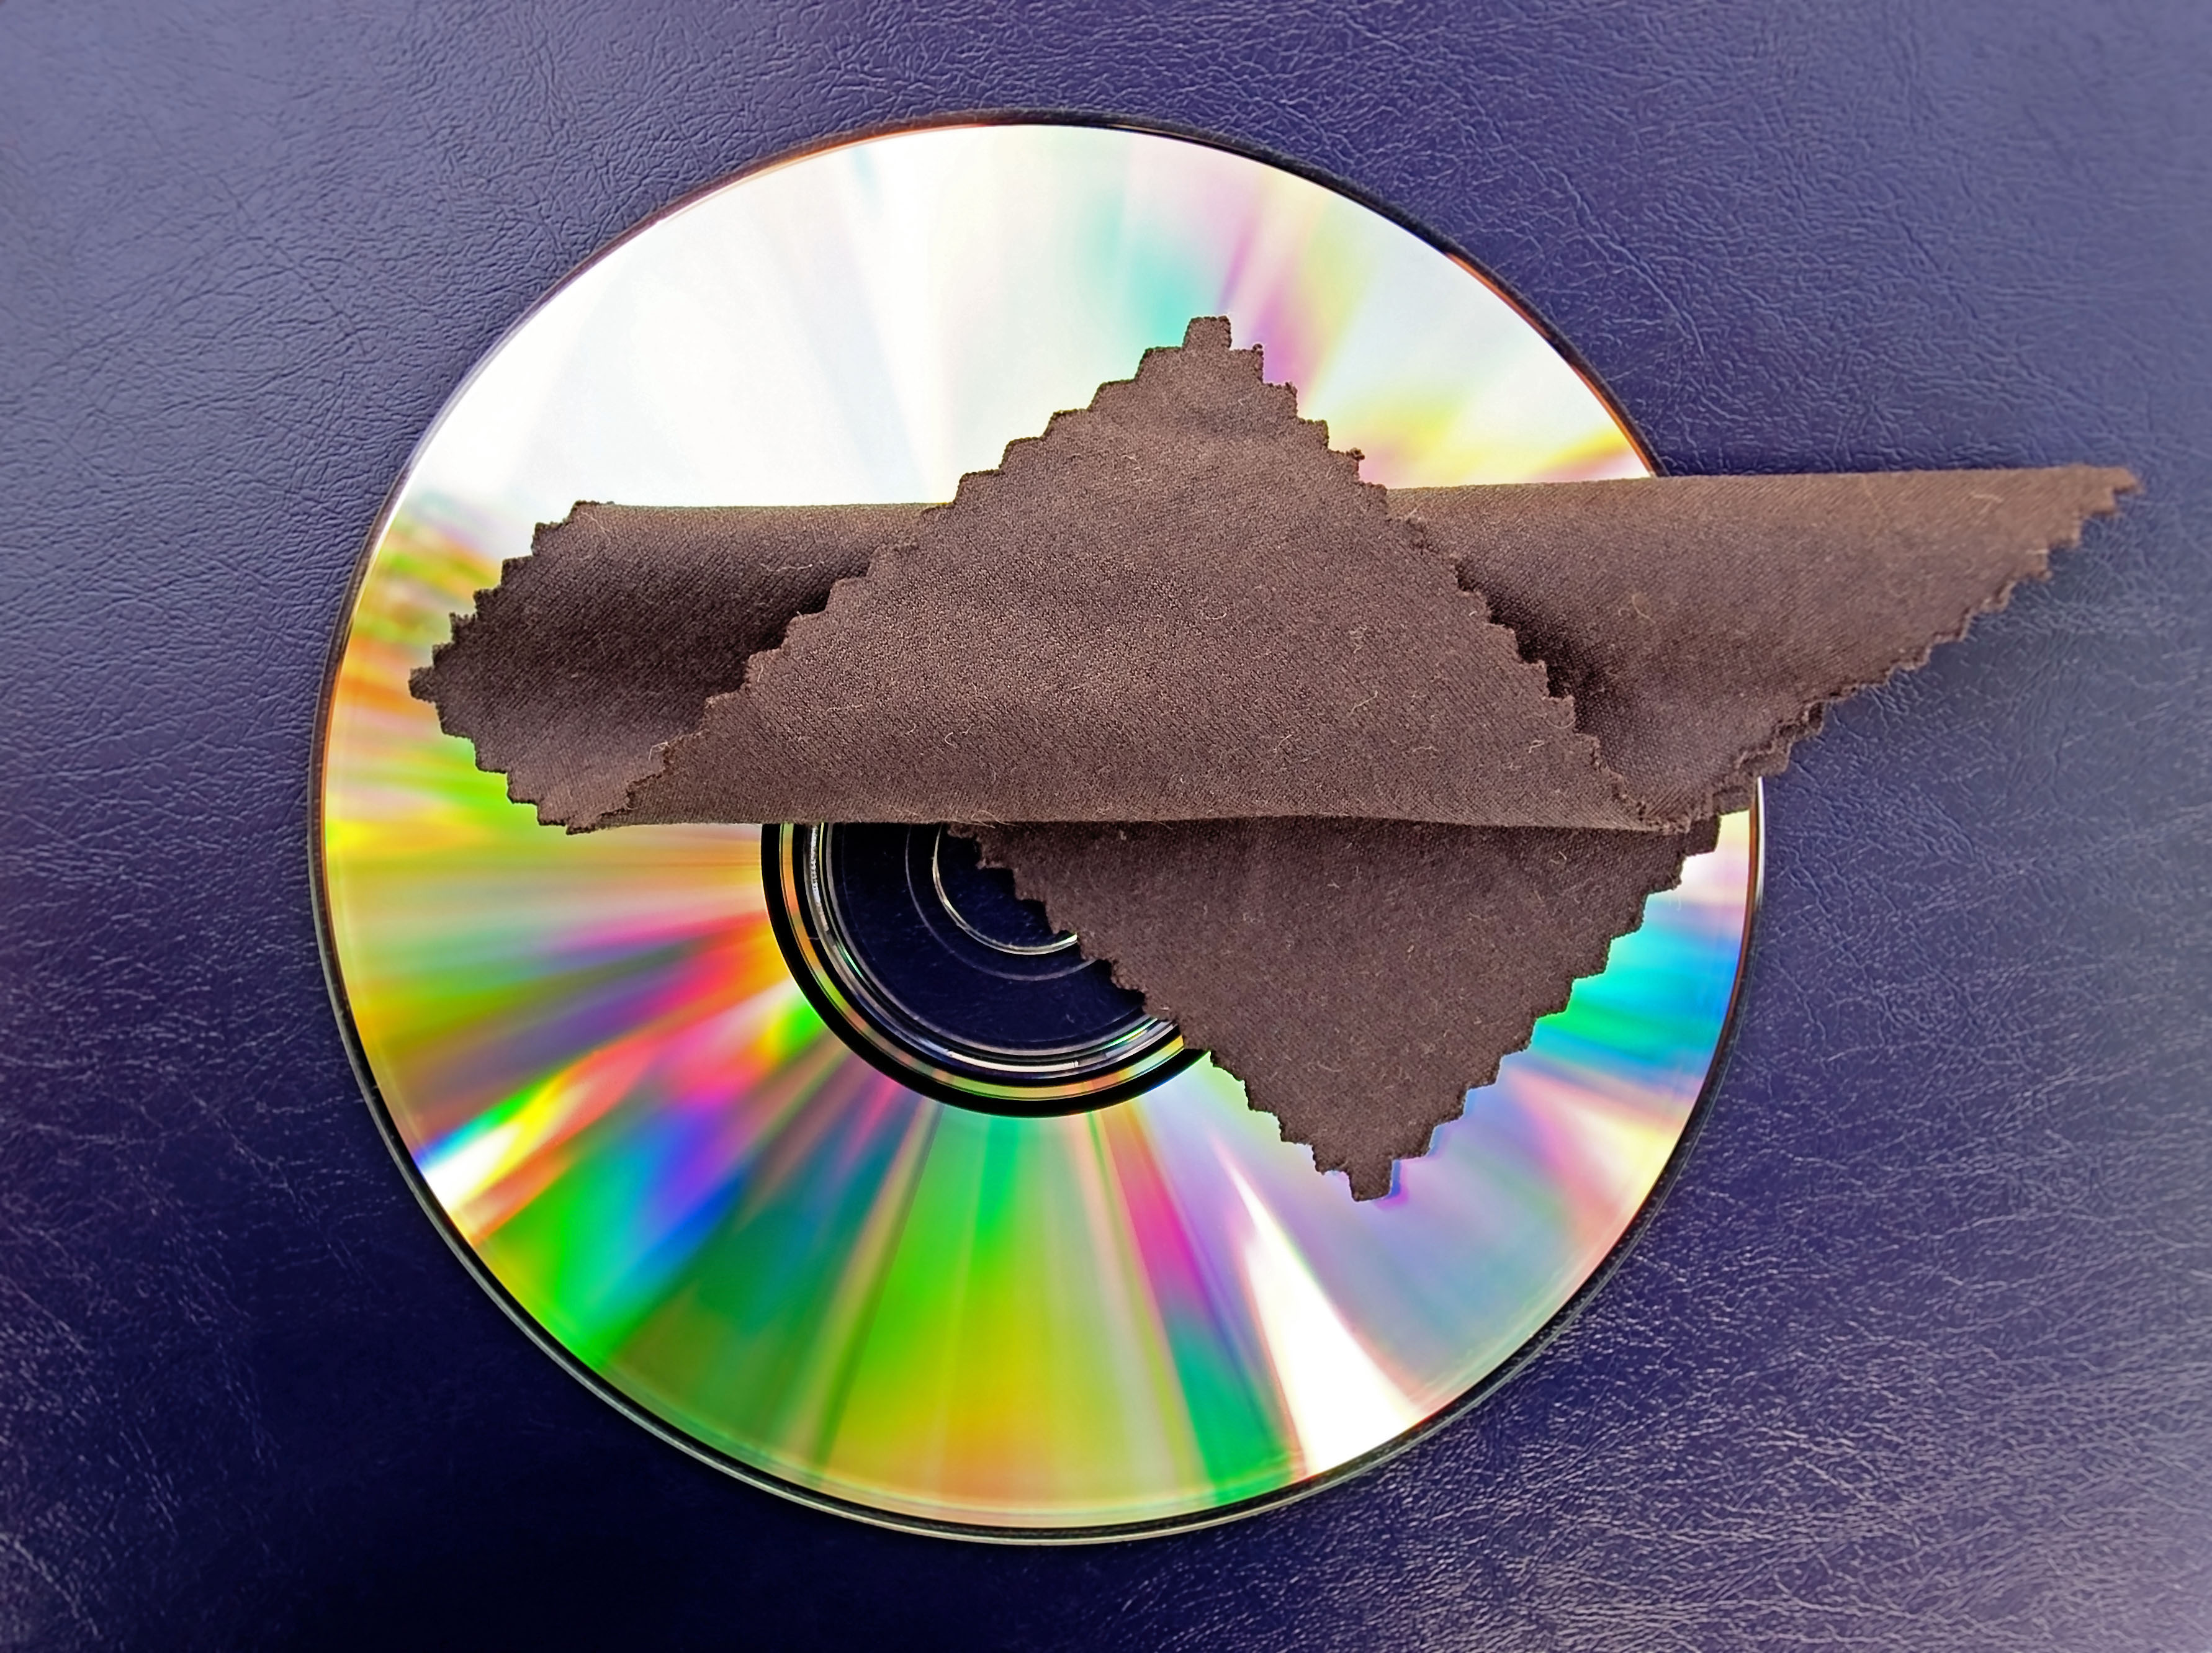 Microfiber cleaning cloth on cd.